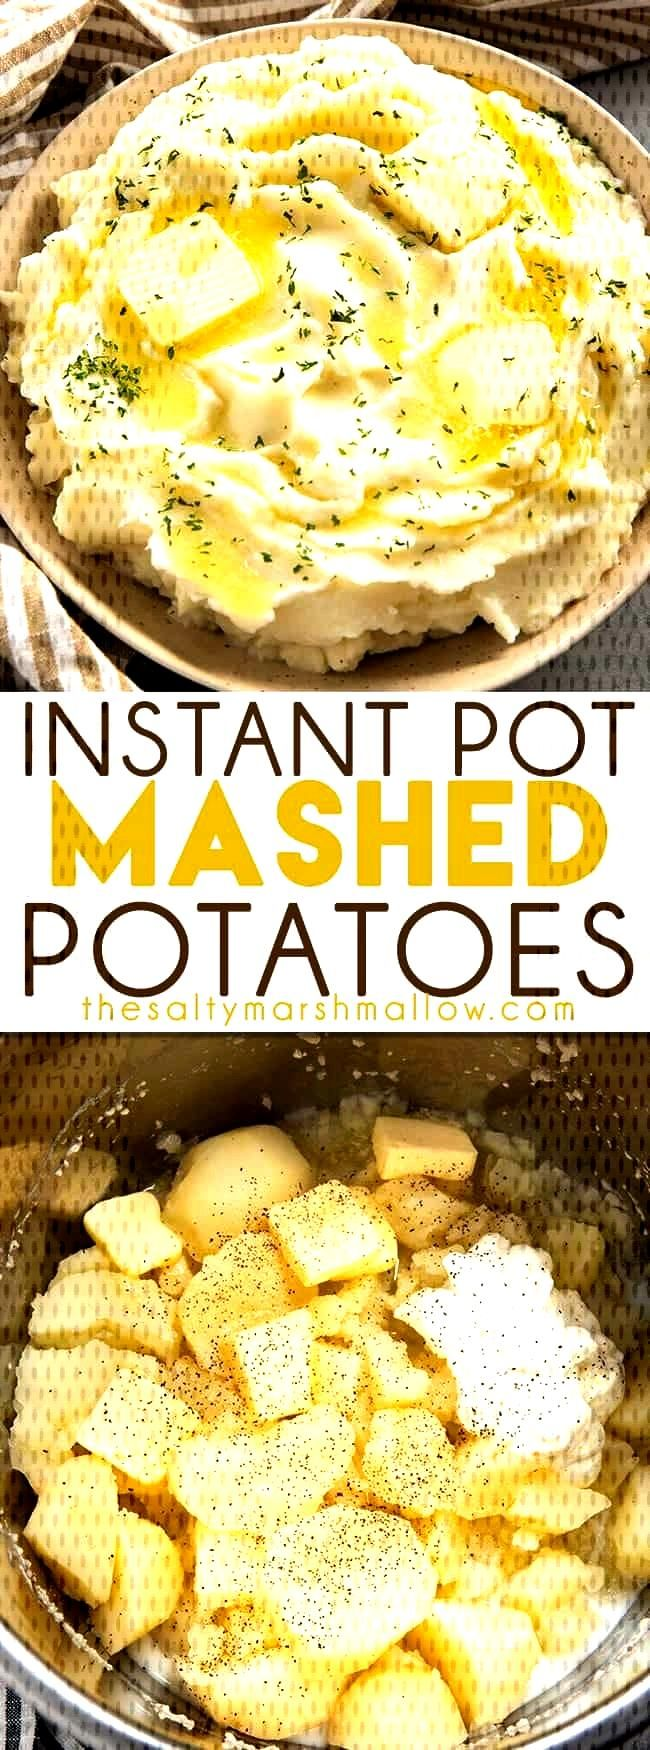 Instant Pot Mashed Potatoes are rich and creamy and so easy to make! Making mashed potatoes has nev